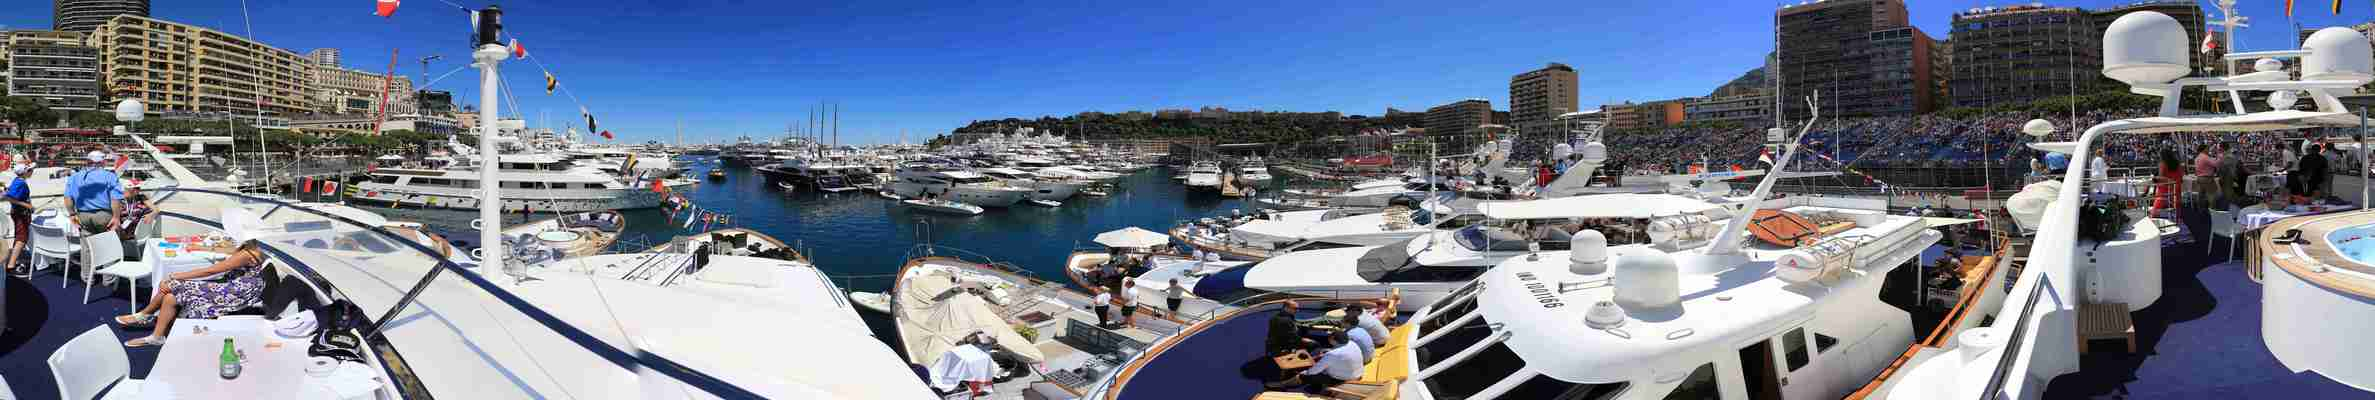 Monaco Grand Prix Harbour